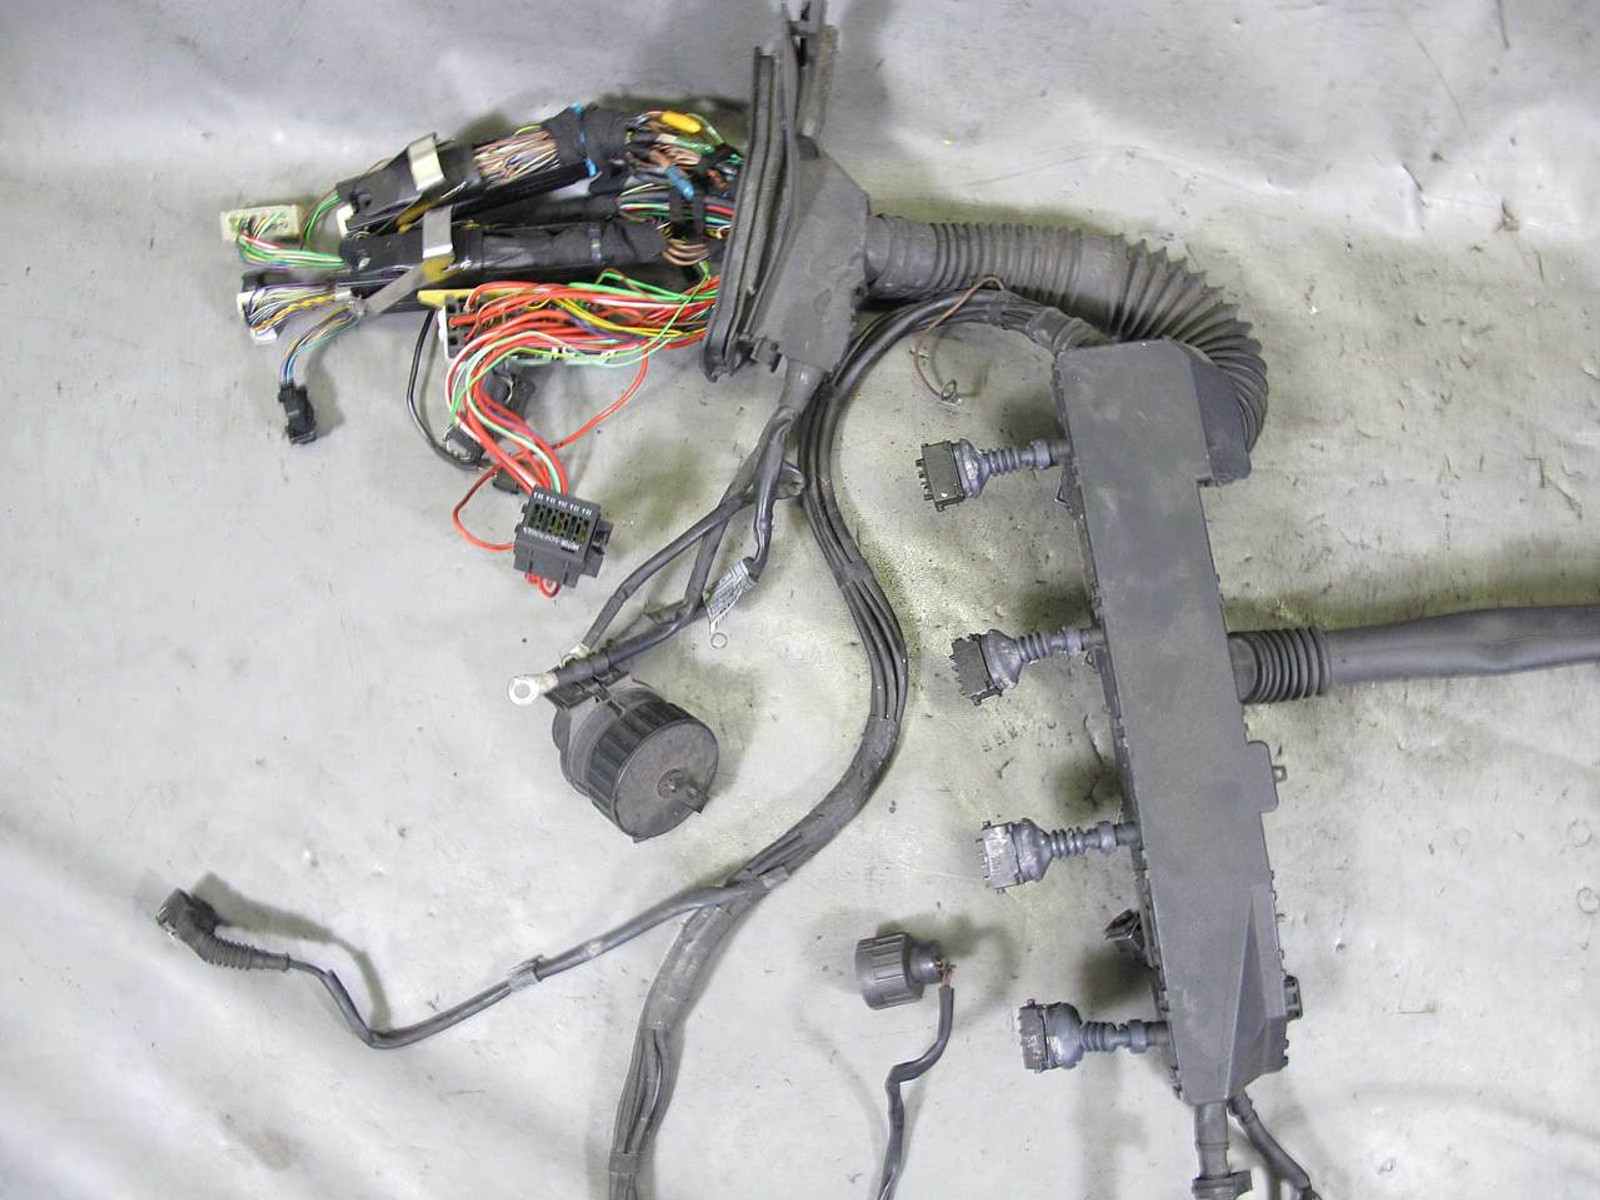 hight resolution of bmw 740il engine wiring harness wiring diagram expert bmw 740il engine wiring harness